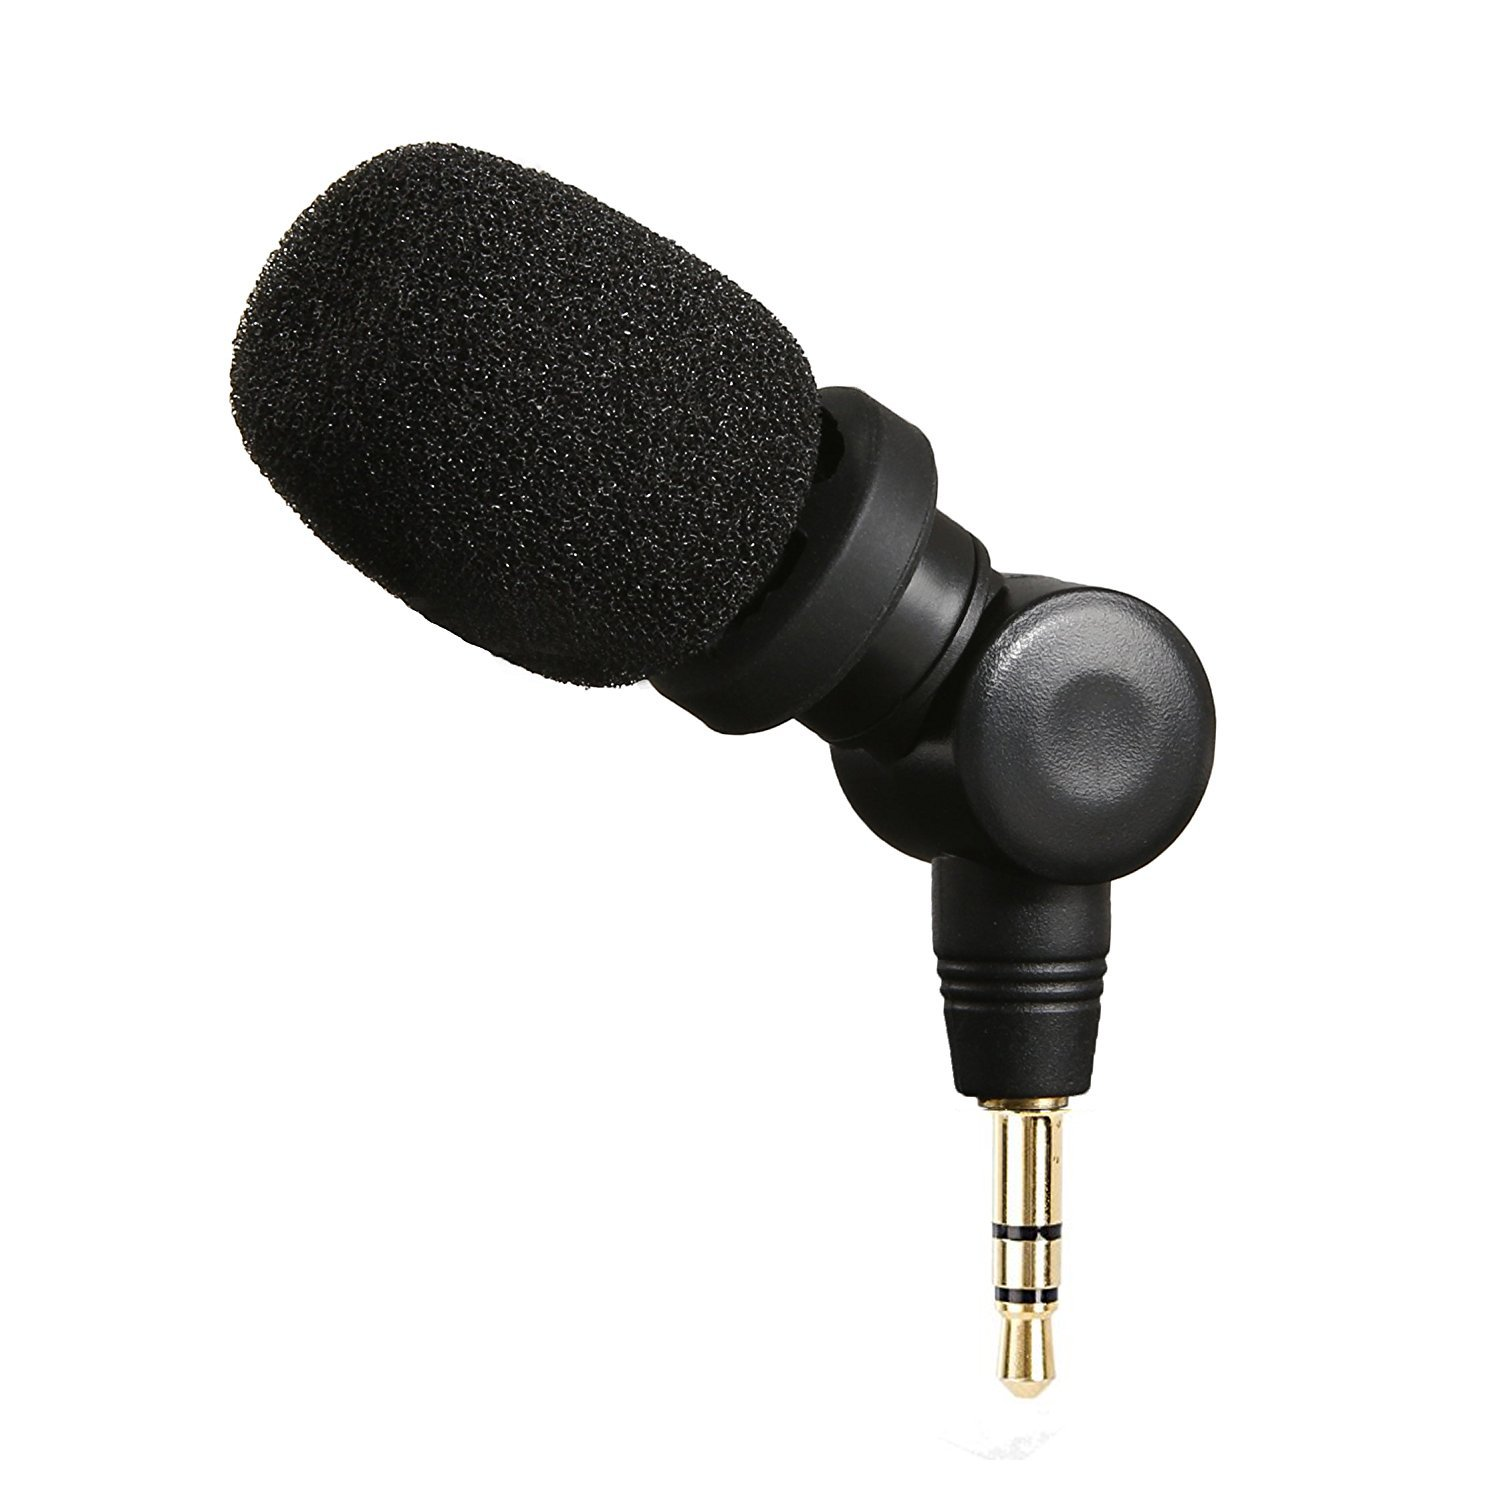 Saramonic SR-XM1 3.5mm TRS Omnidirectional Microphone Plug and Play Mic for DSLR Cameras, Camcorders, CaMixer, SmartMixer, LavMic, SmartRig+ and UWMIC9/UWMIC10/UWMIC15 Wireless Microphone Systems by Saramonic